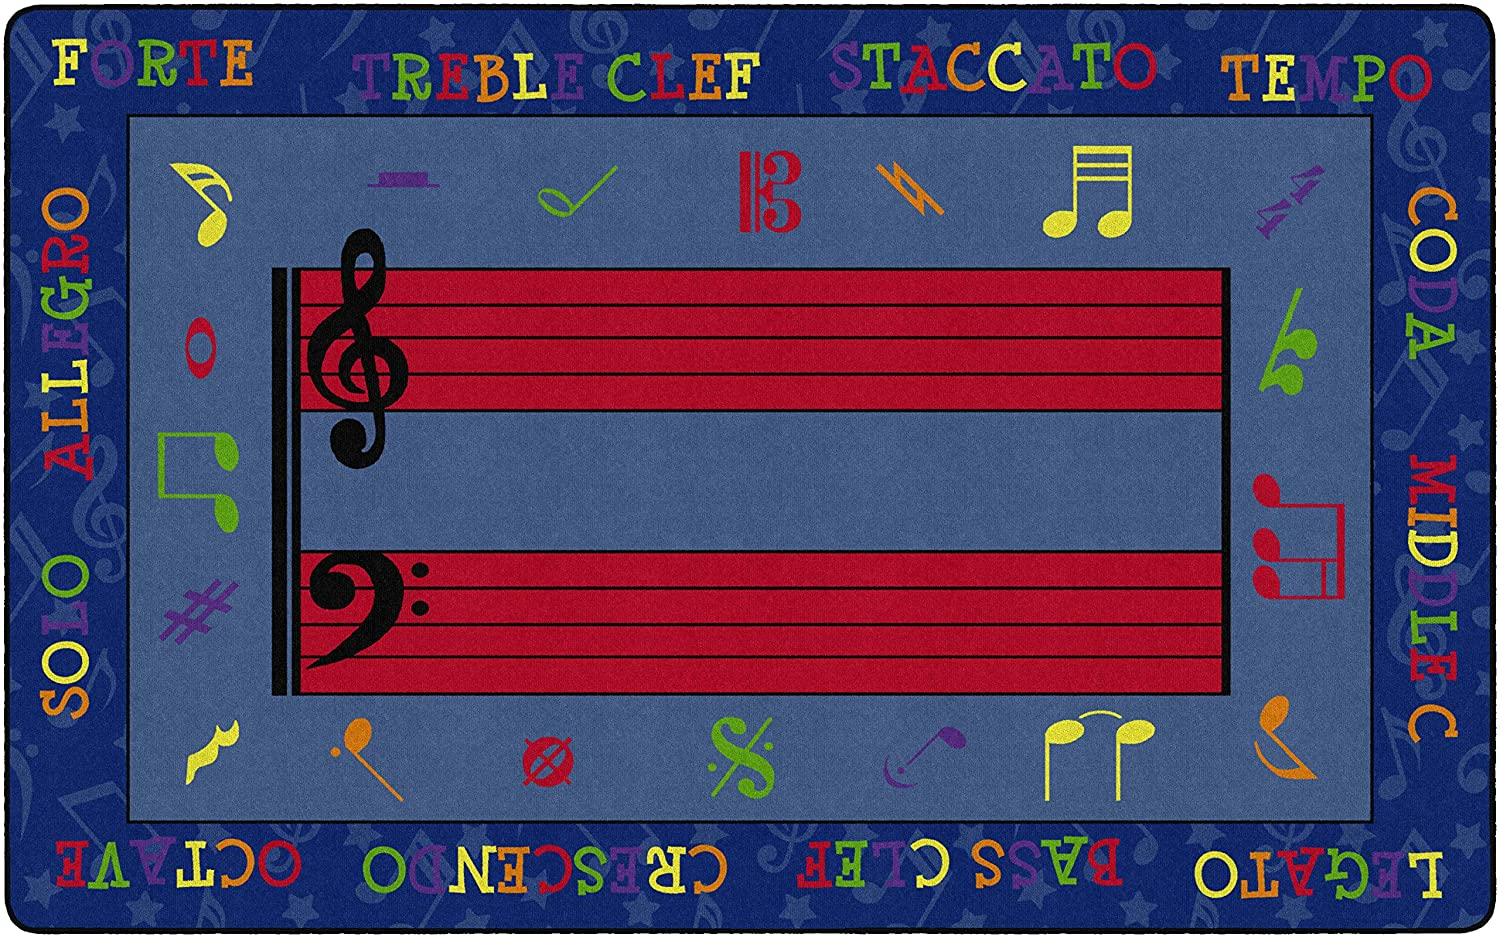 Flagship Carpets Fun with Music Colorful Musical Notes Area Rug for Children's Learning Classroom or Kids Bedroom Activity Rug, 7'6